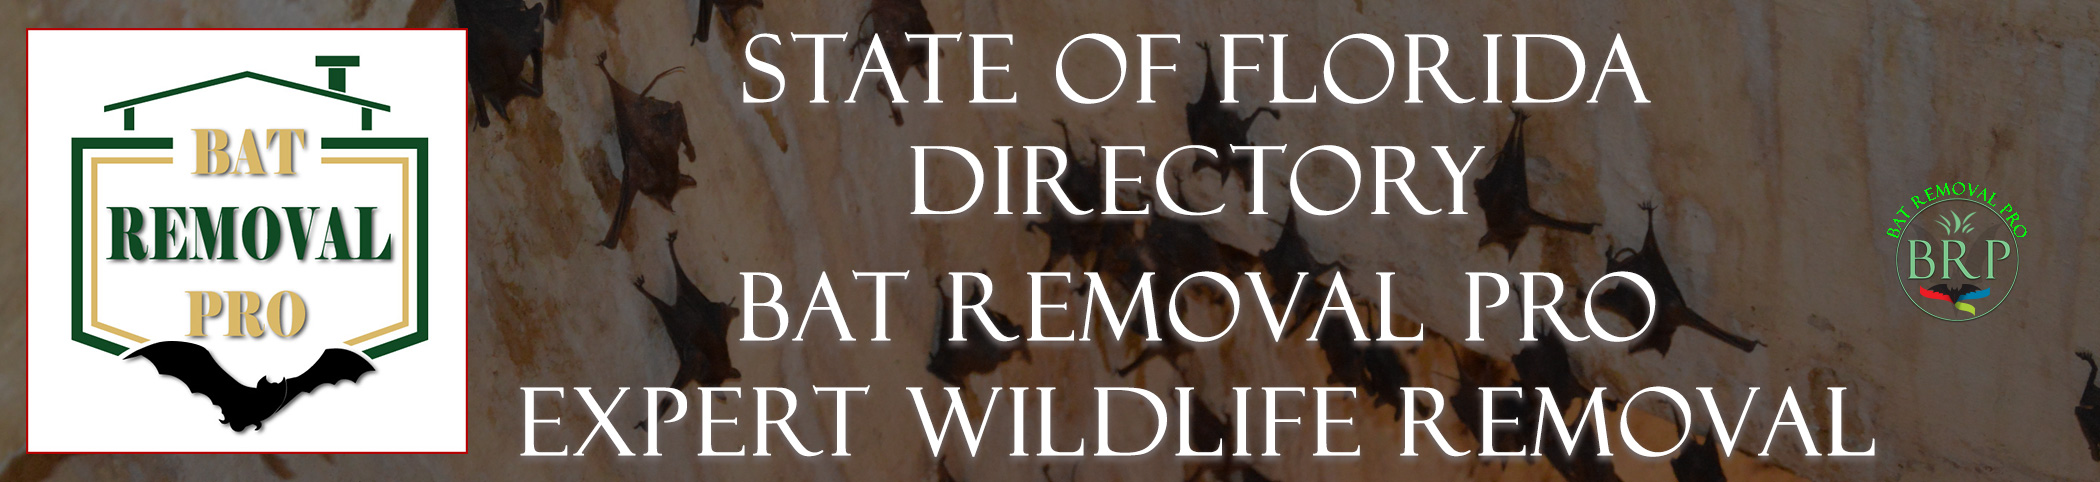 florida-bat-removal-at-bat-removal-pro-header-image